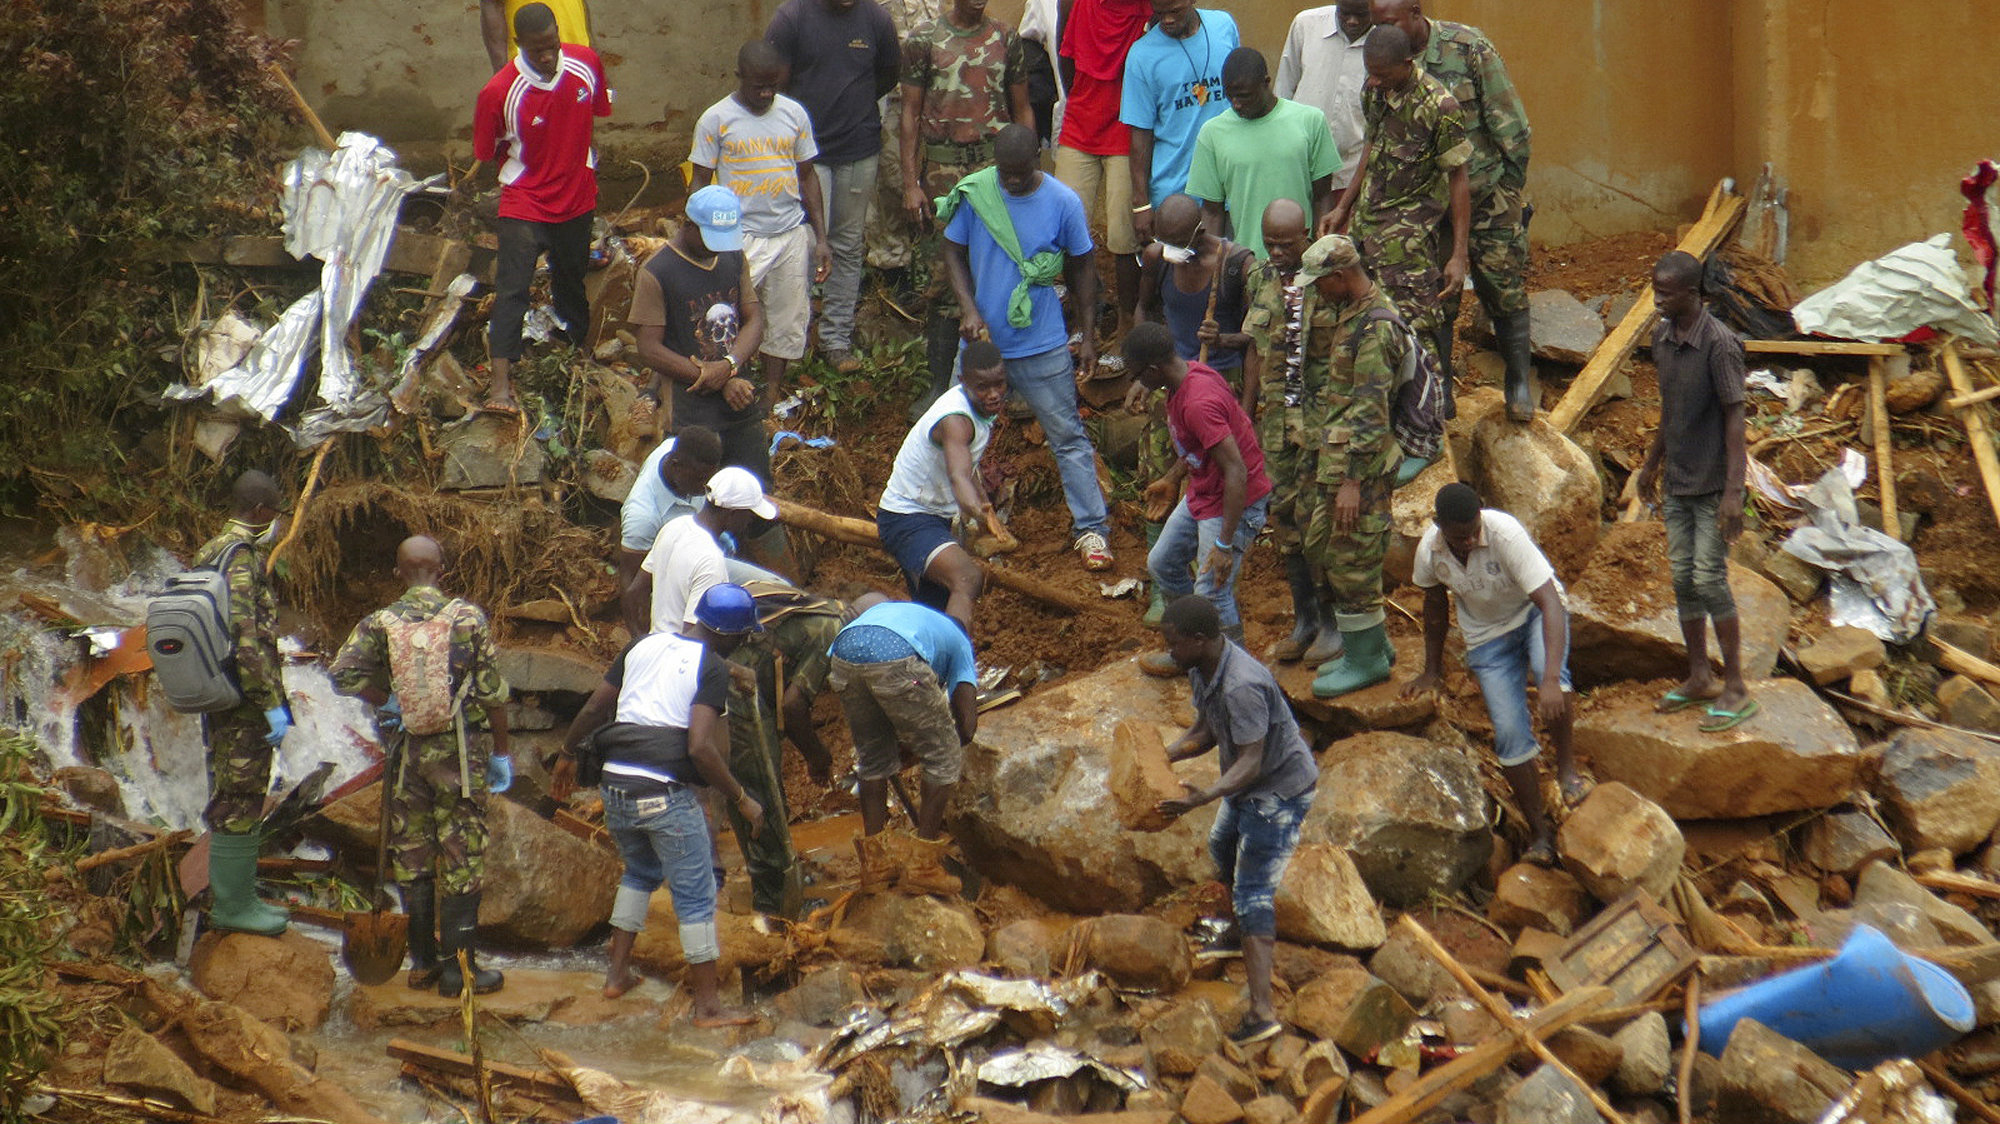 """Volunteers search for bodies from the scene of heavy flooding and mudslides in Regent, just outside of Sierra Leone's capital Freetown. Tuesday, Aug. 15 , 2017. Survivors of deadly mudslides in Sierra Leone's capital are vividly describing the disaster as President Ernest Bai Koroma says the nation is in a """"state of grief."""""""